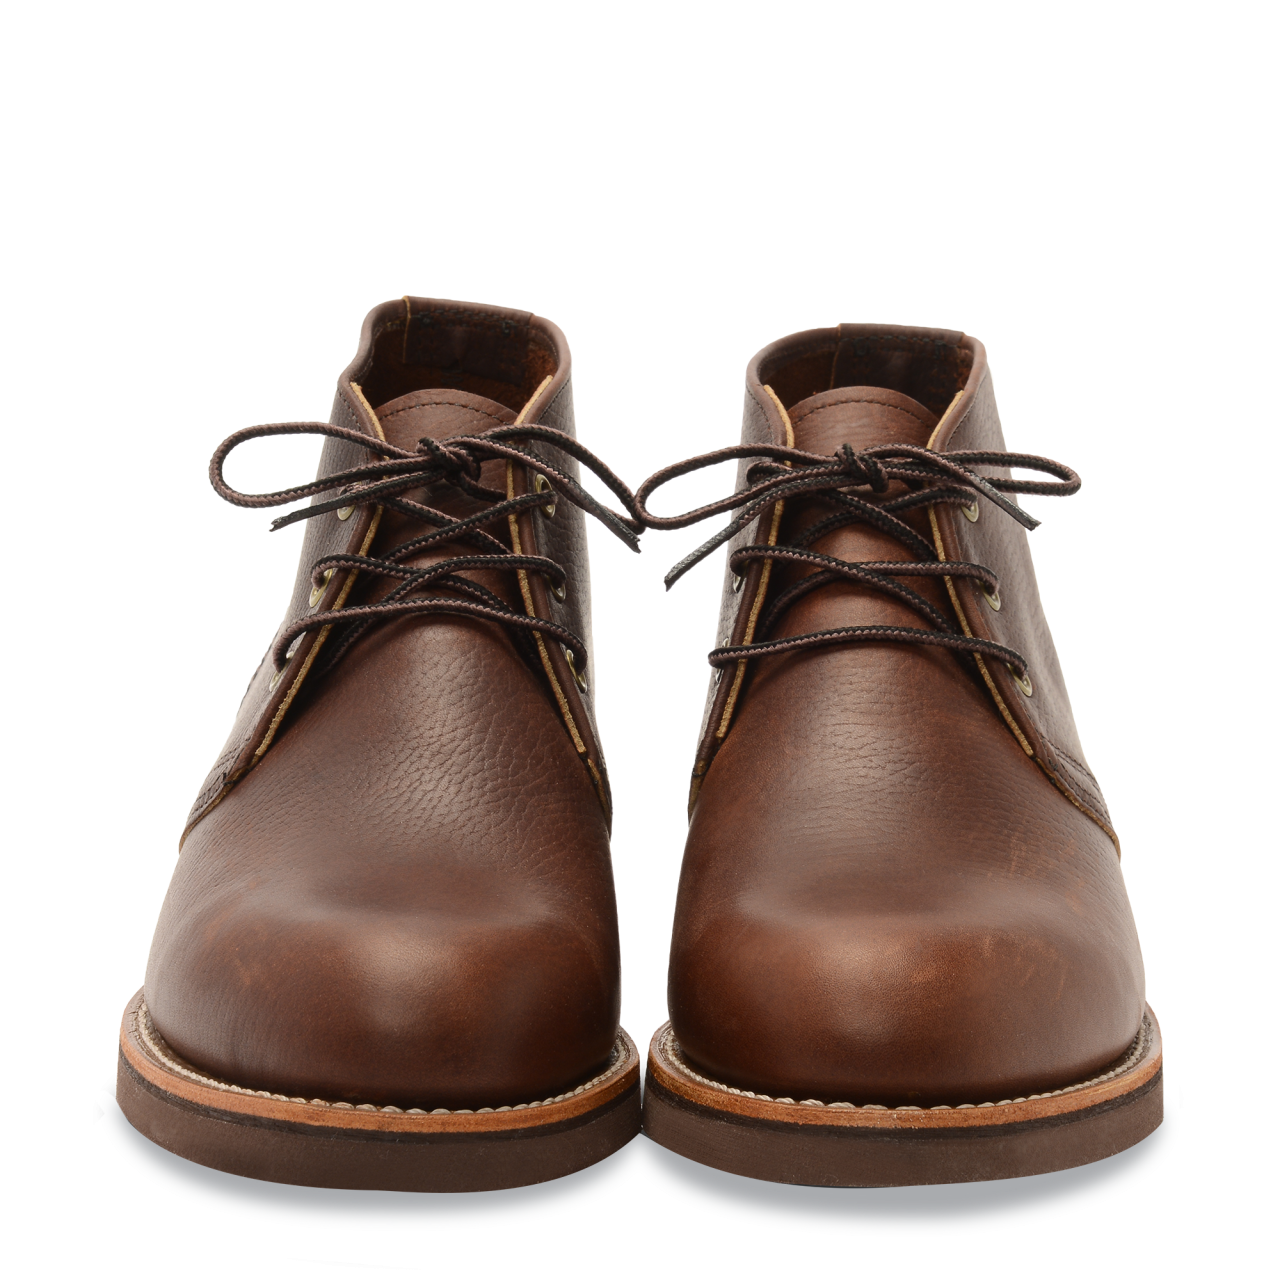 Red Wing 9215 Foreman Chukka